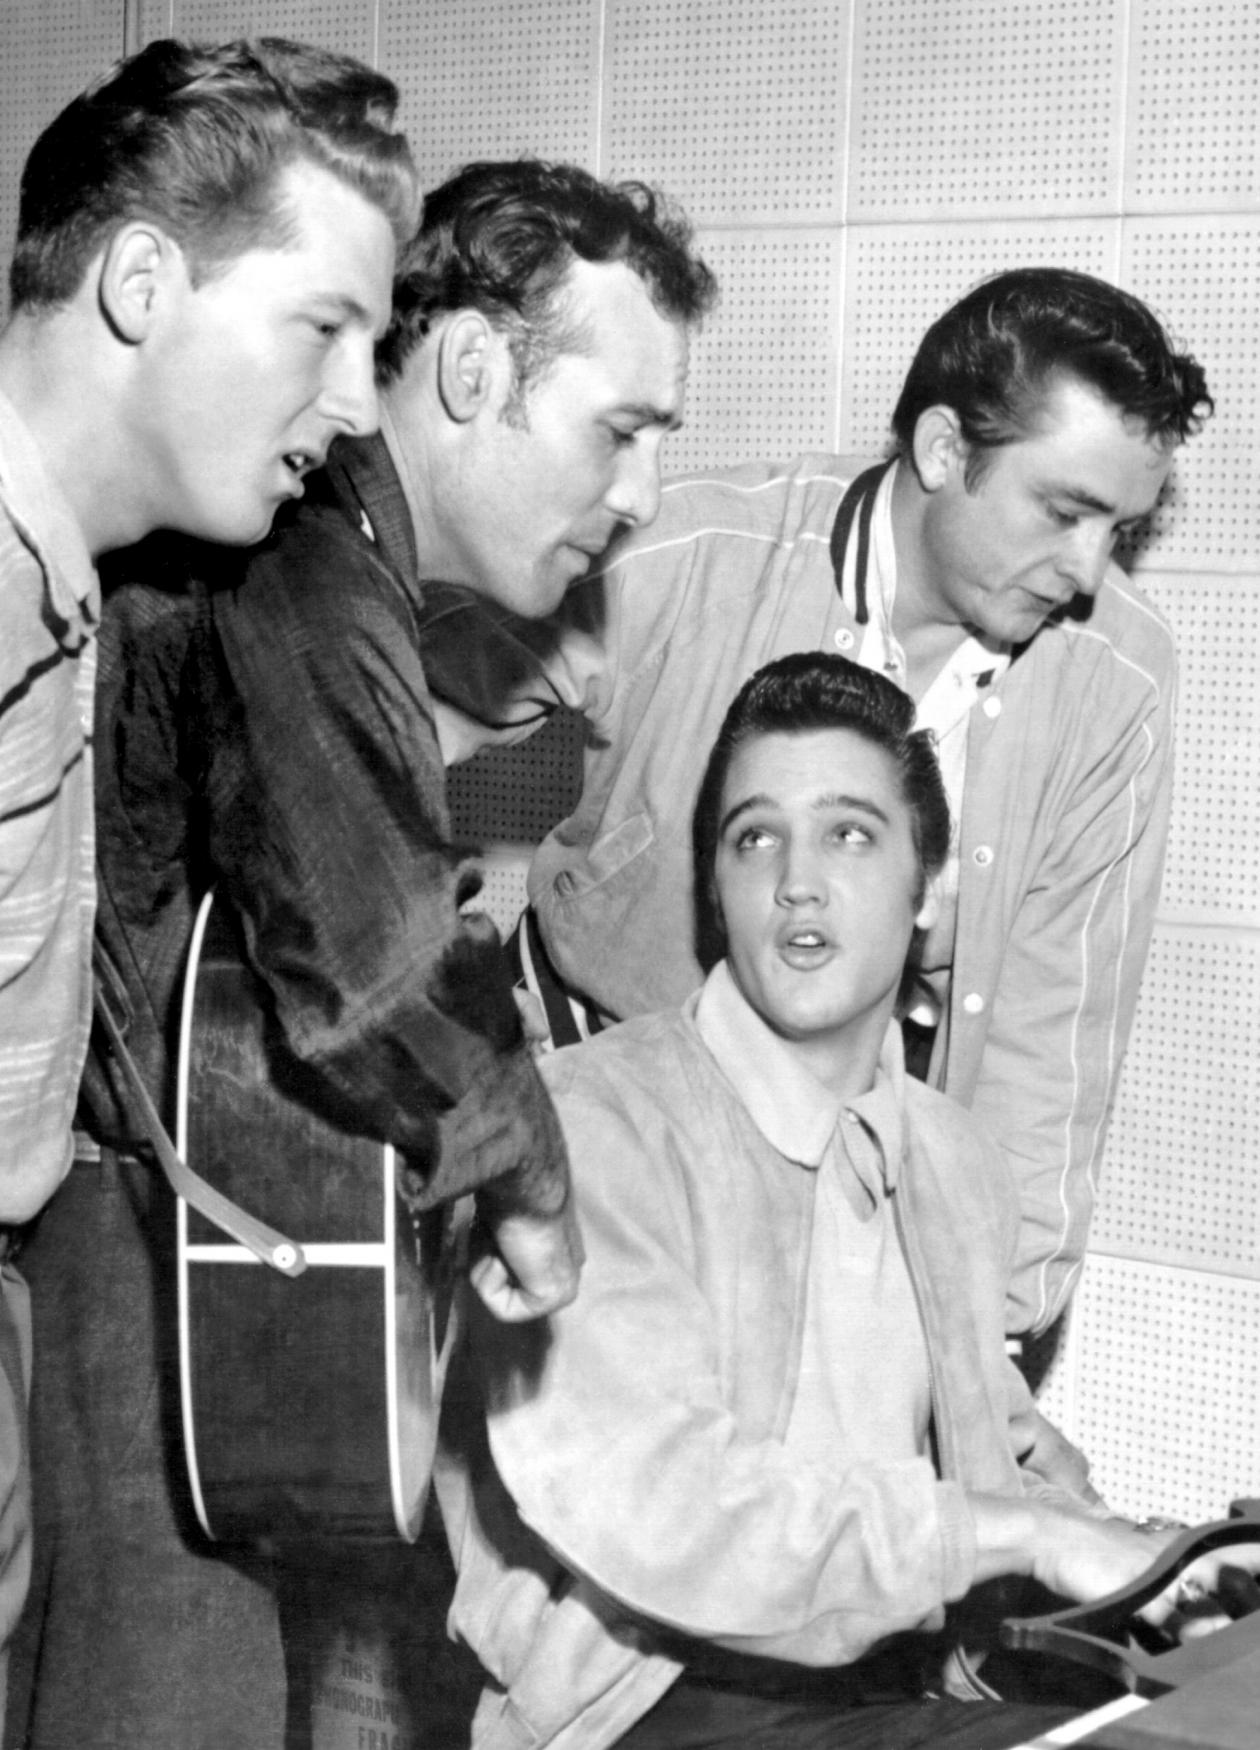 Jerry Lee Lewis, Carl Perkins, Elvis Presley and Johnny Cash singing, while Elvis plays the piano